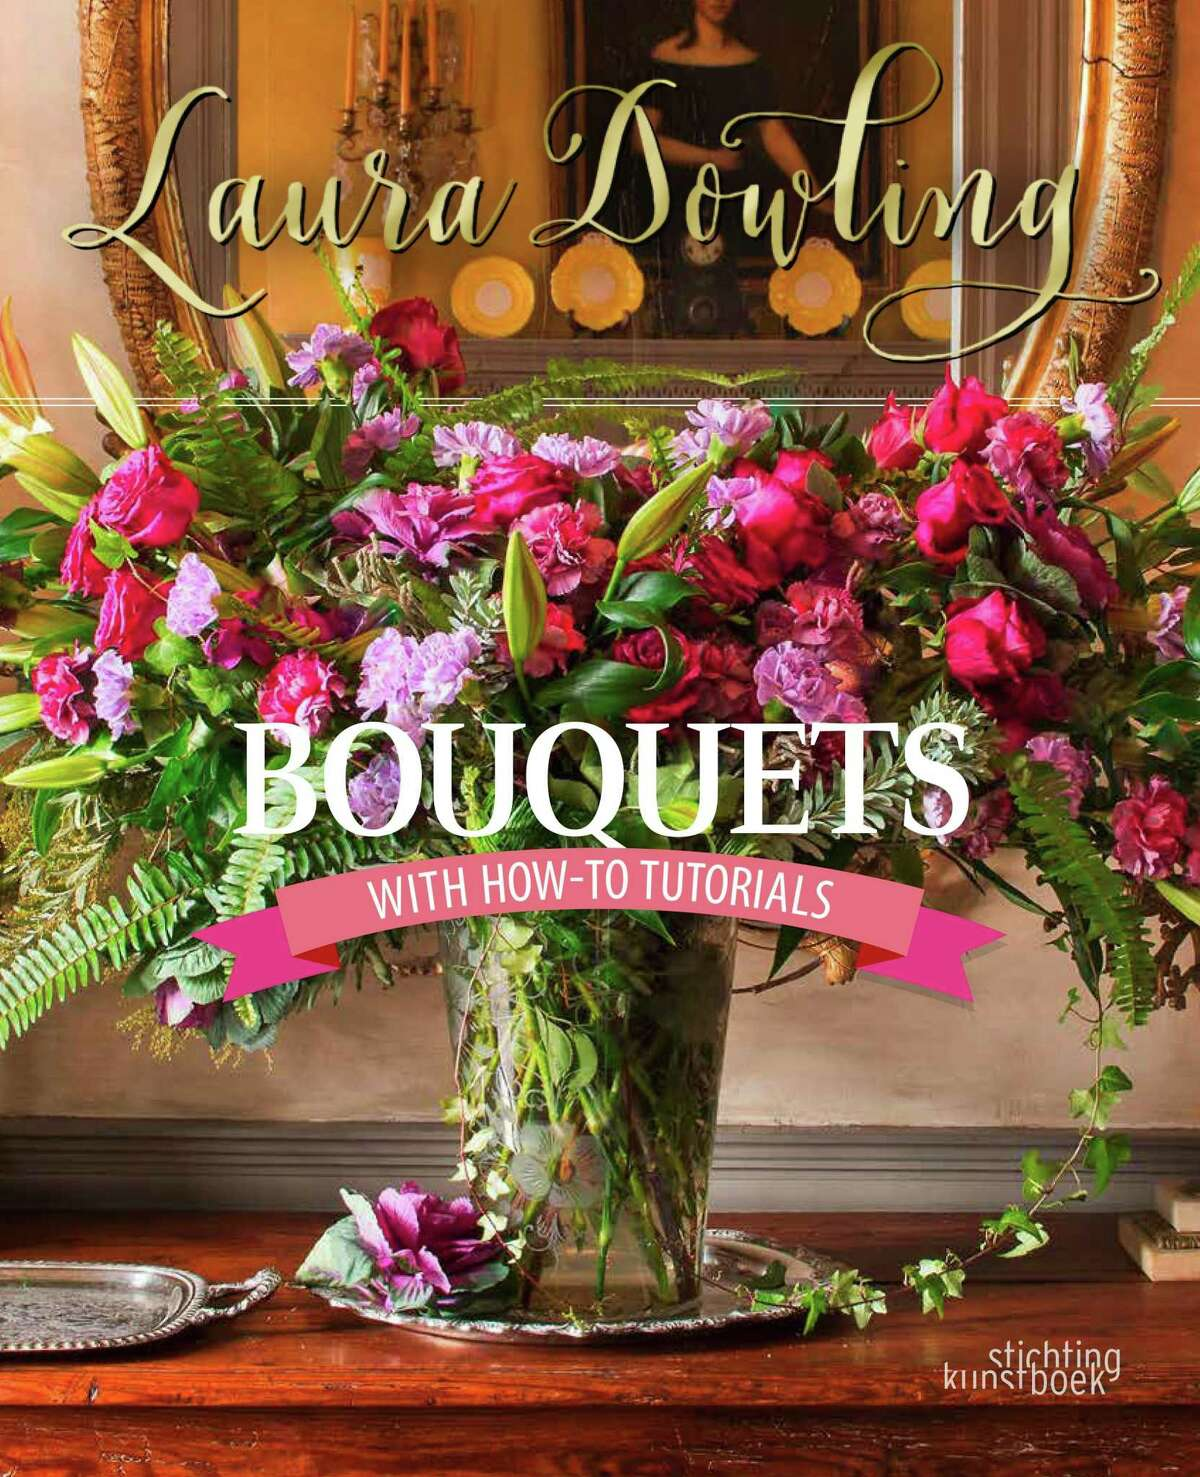 """Laura Dowling's new book, """"Bouquets.""""(Stichting Kunstboak; $35; 144 pp.)"""